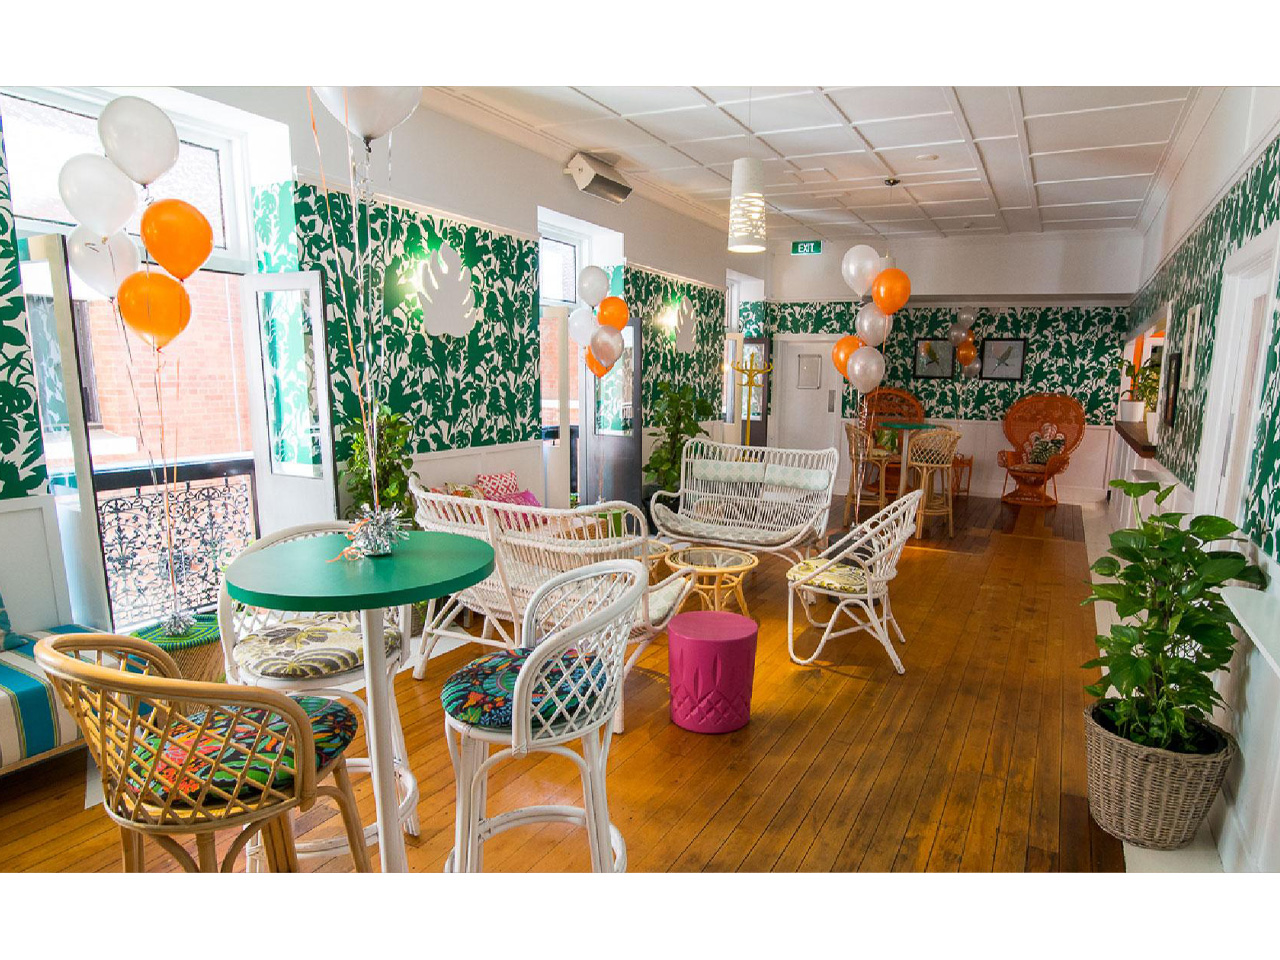 Brightly lit event space with wicker round green tables and white chairs